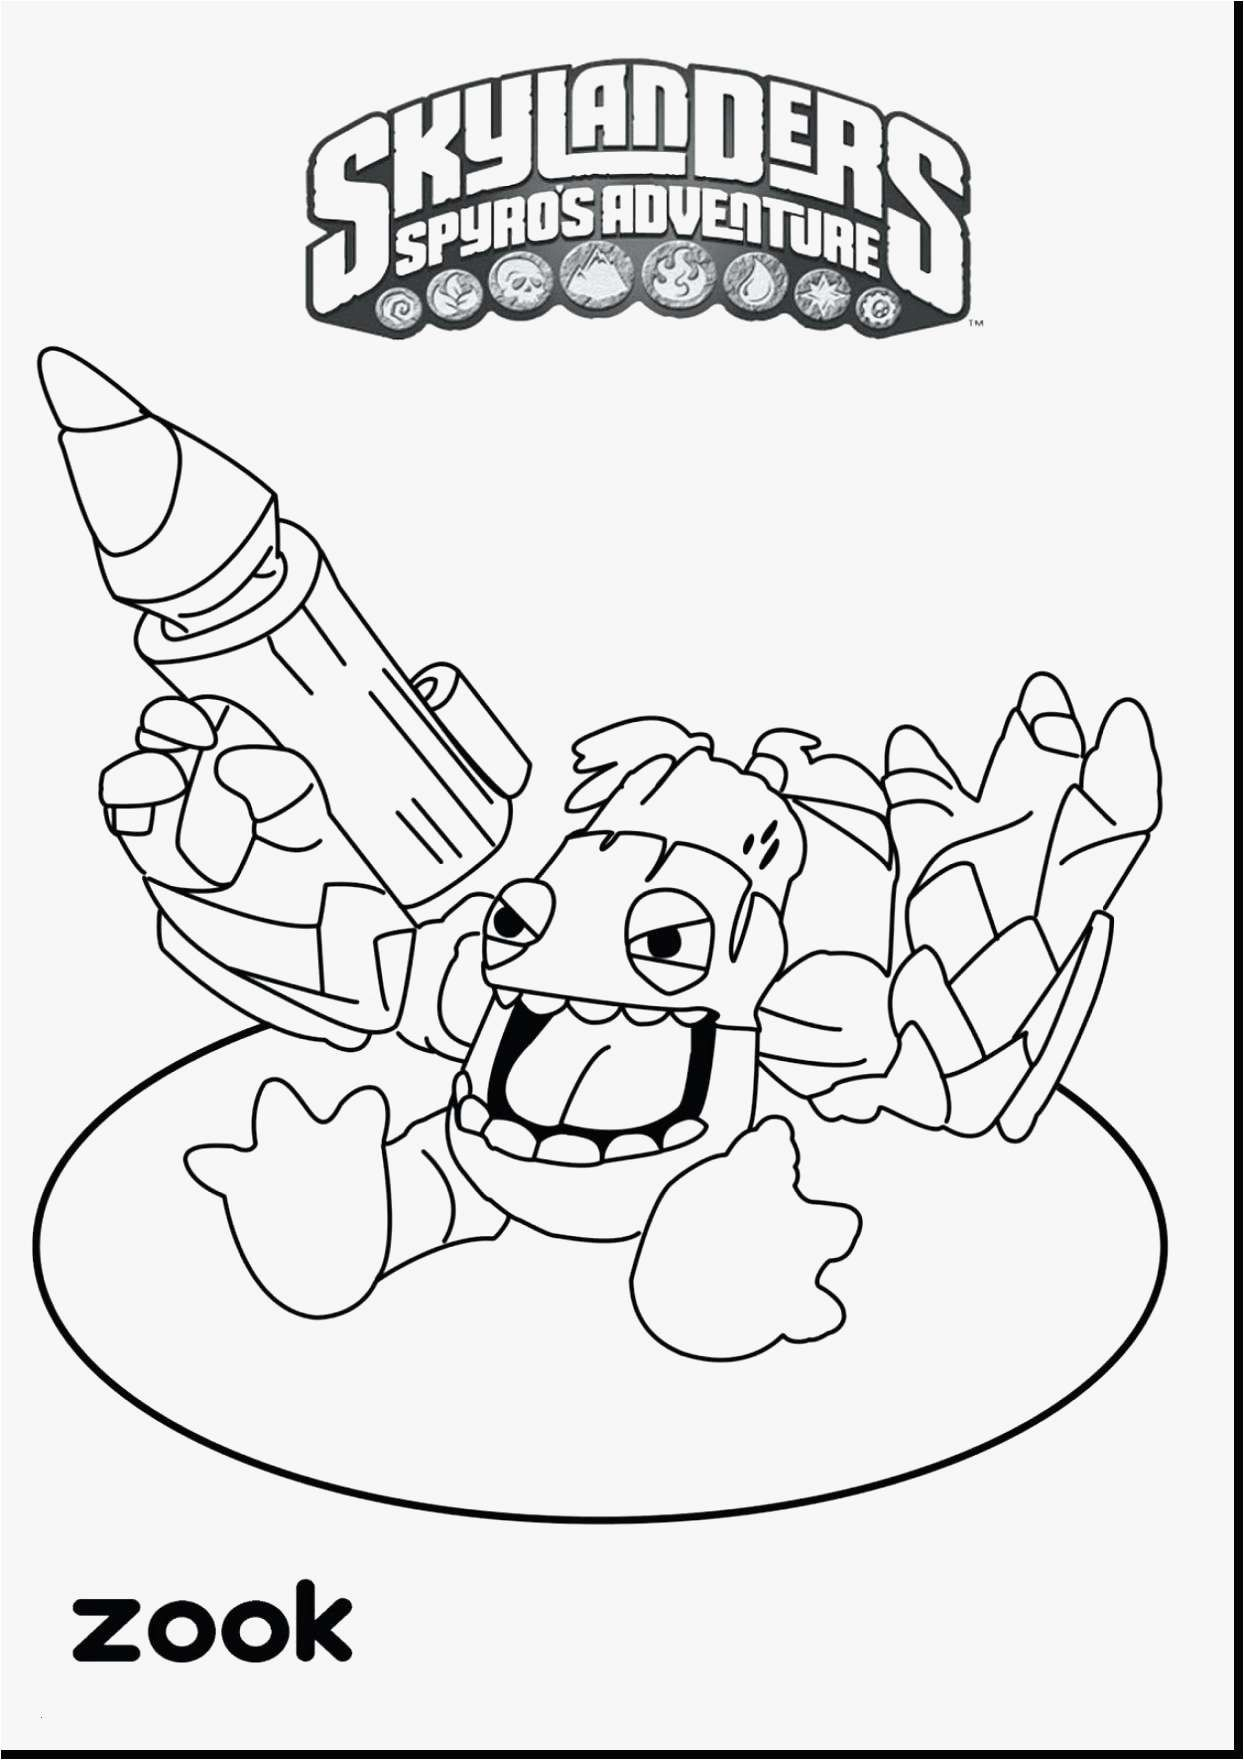 free bible coloring pages for toddlers Collection-Preschool Bible Coloring Pages Best 25 Best Free Bible Coloring Pages Free Download Preschool 6-e